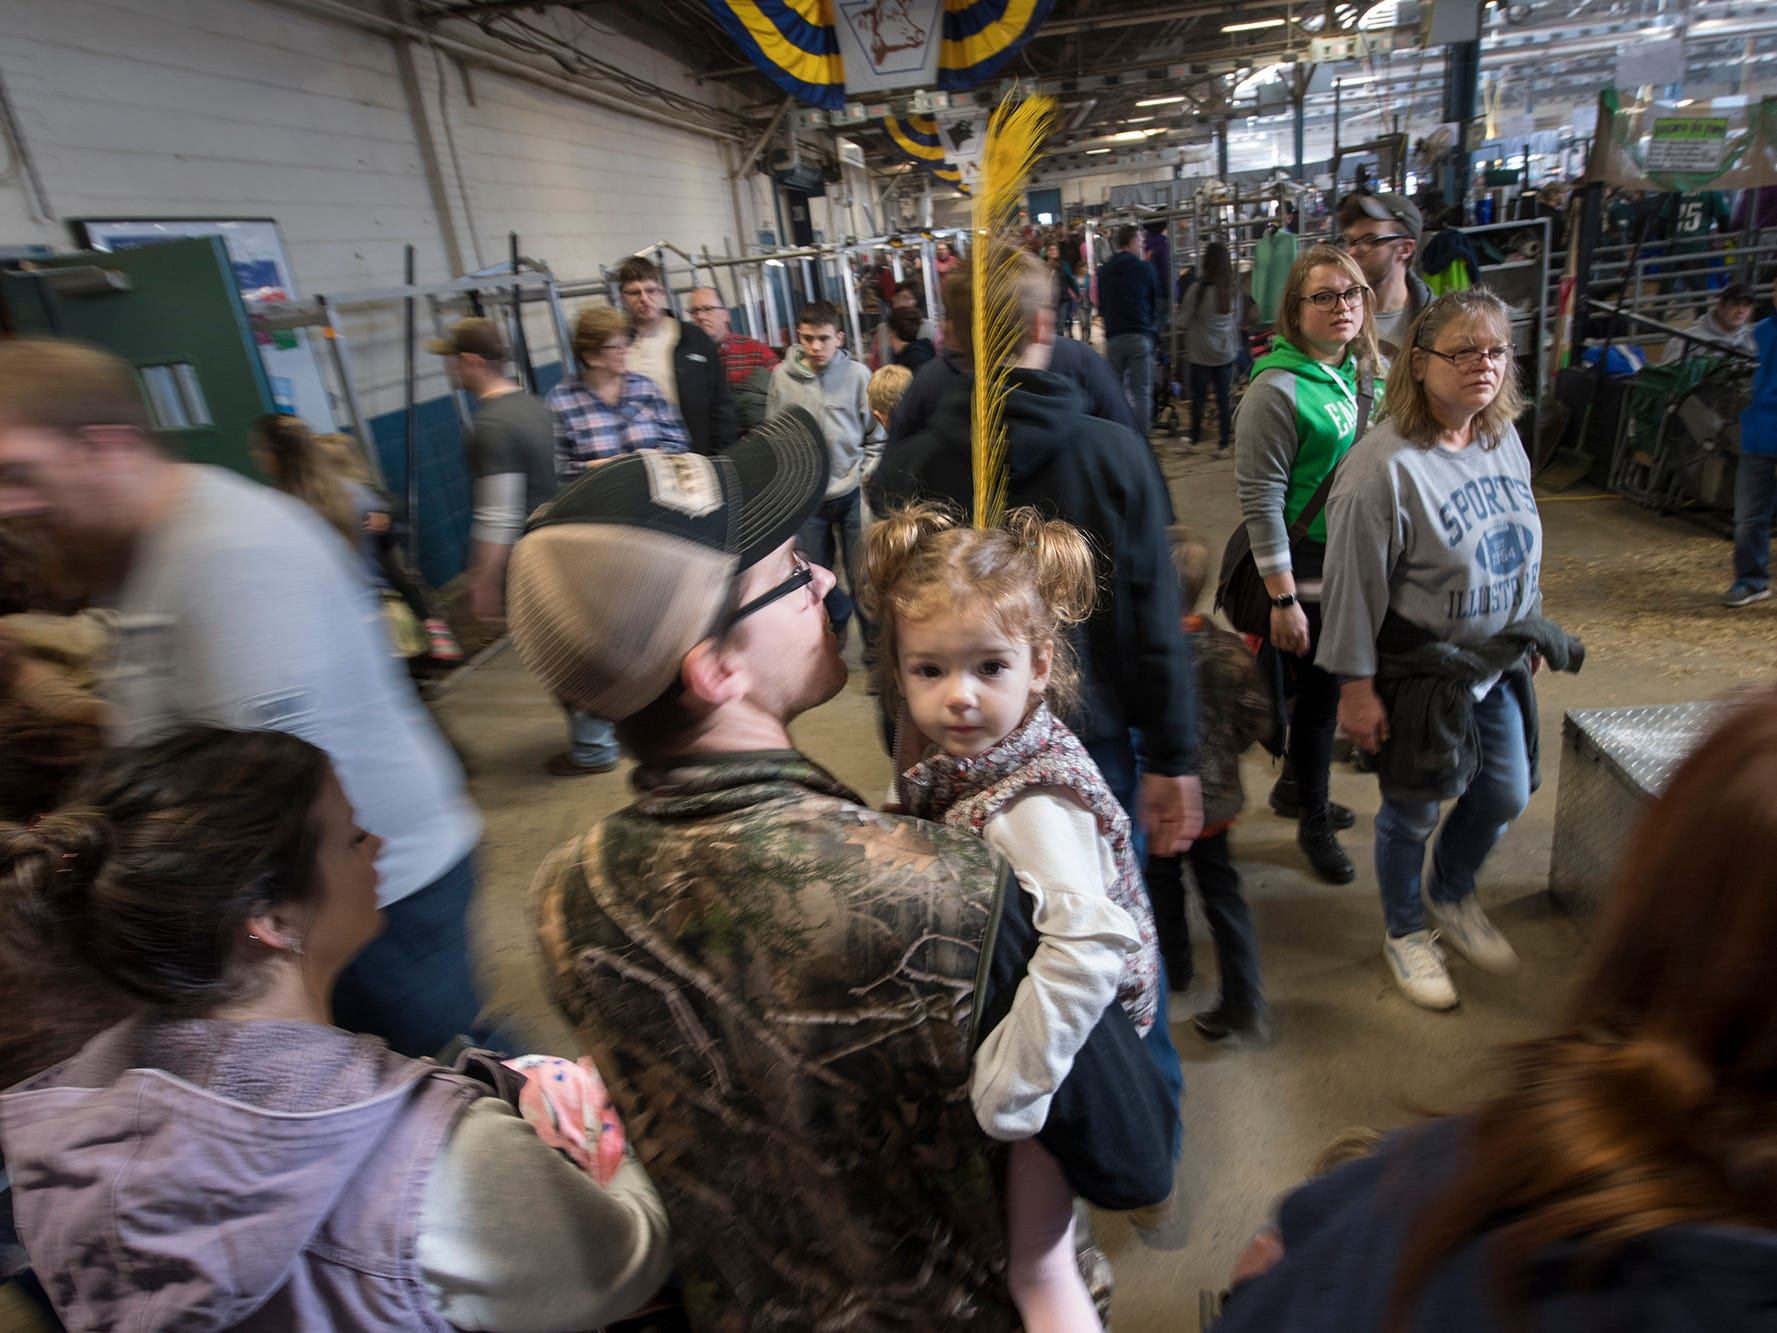 Crowds work their way through the maze of buildings Sunday during The 103rd Pennsylvania Farm Show in Harrisburg.